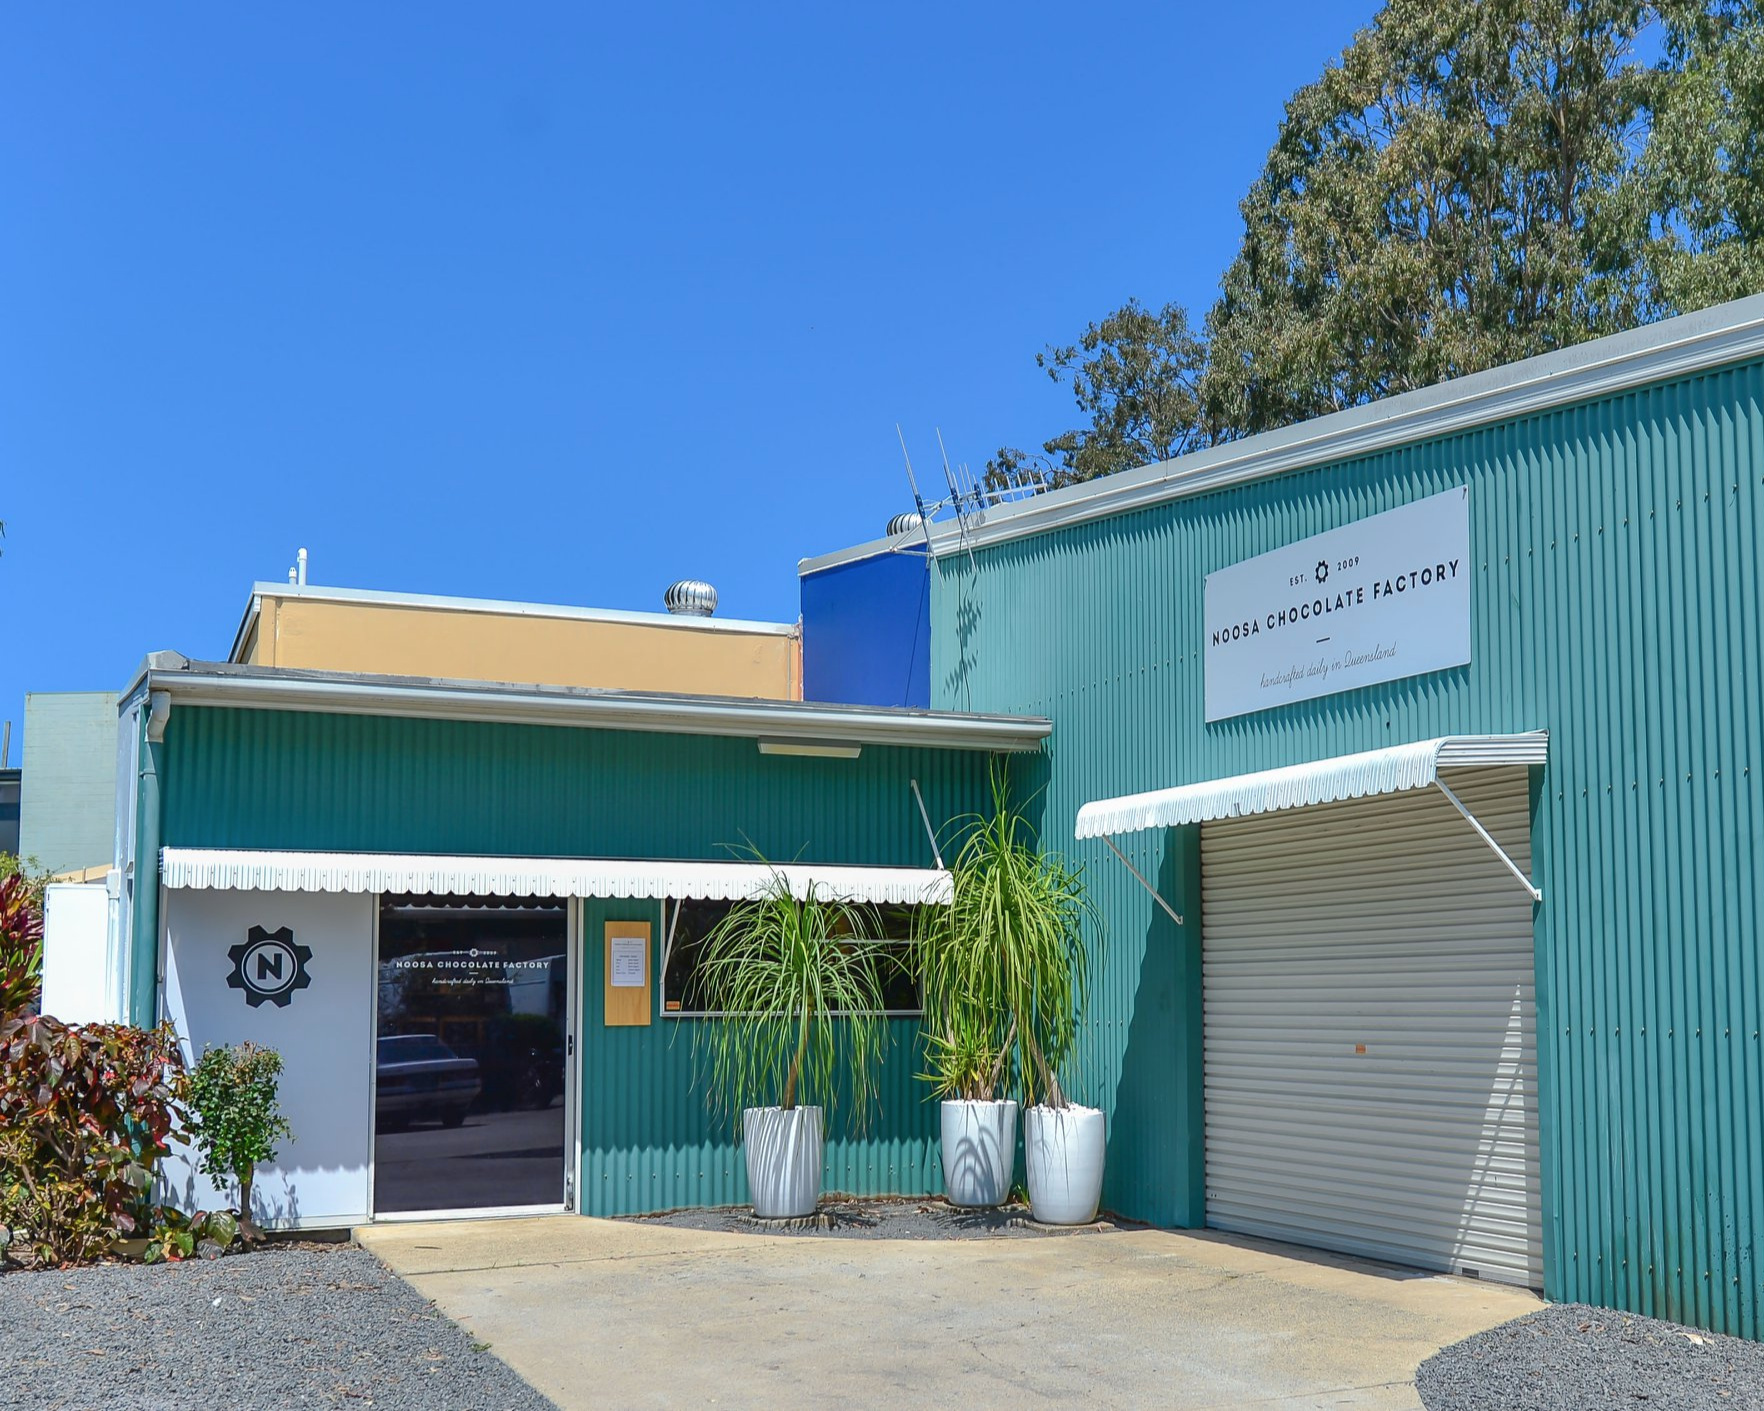 Our Noosa Chocolate Factory retail store in Project Ave, Noosaville